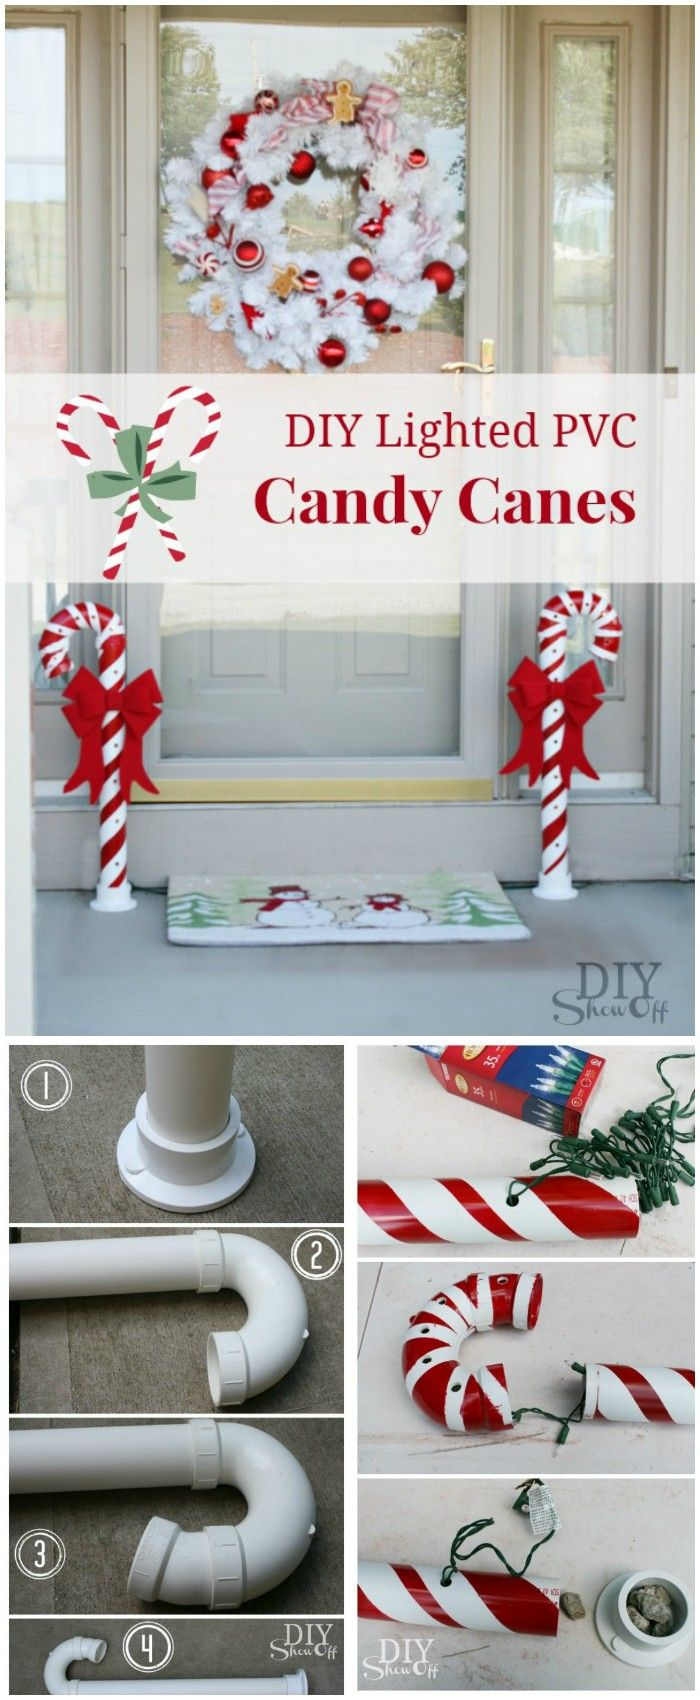 Candy Cane Outdoor Christmas Decorations 21 Cheap Diy Outdoor Christmas Decorations  Diy Outdoor Christmas